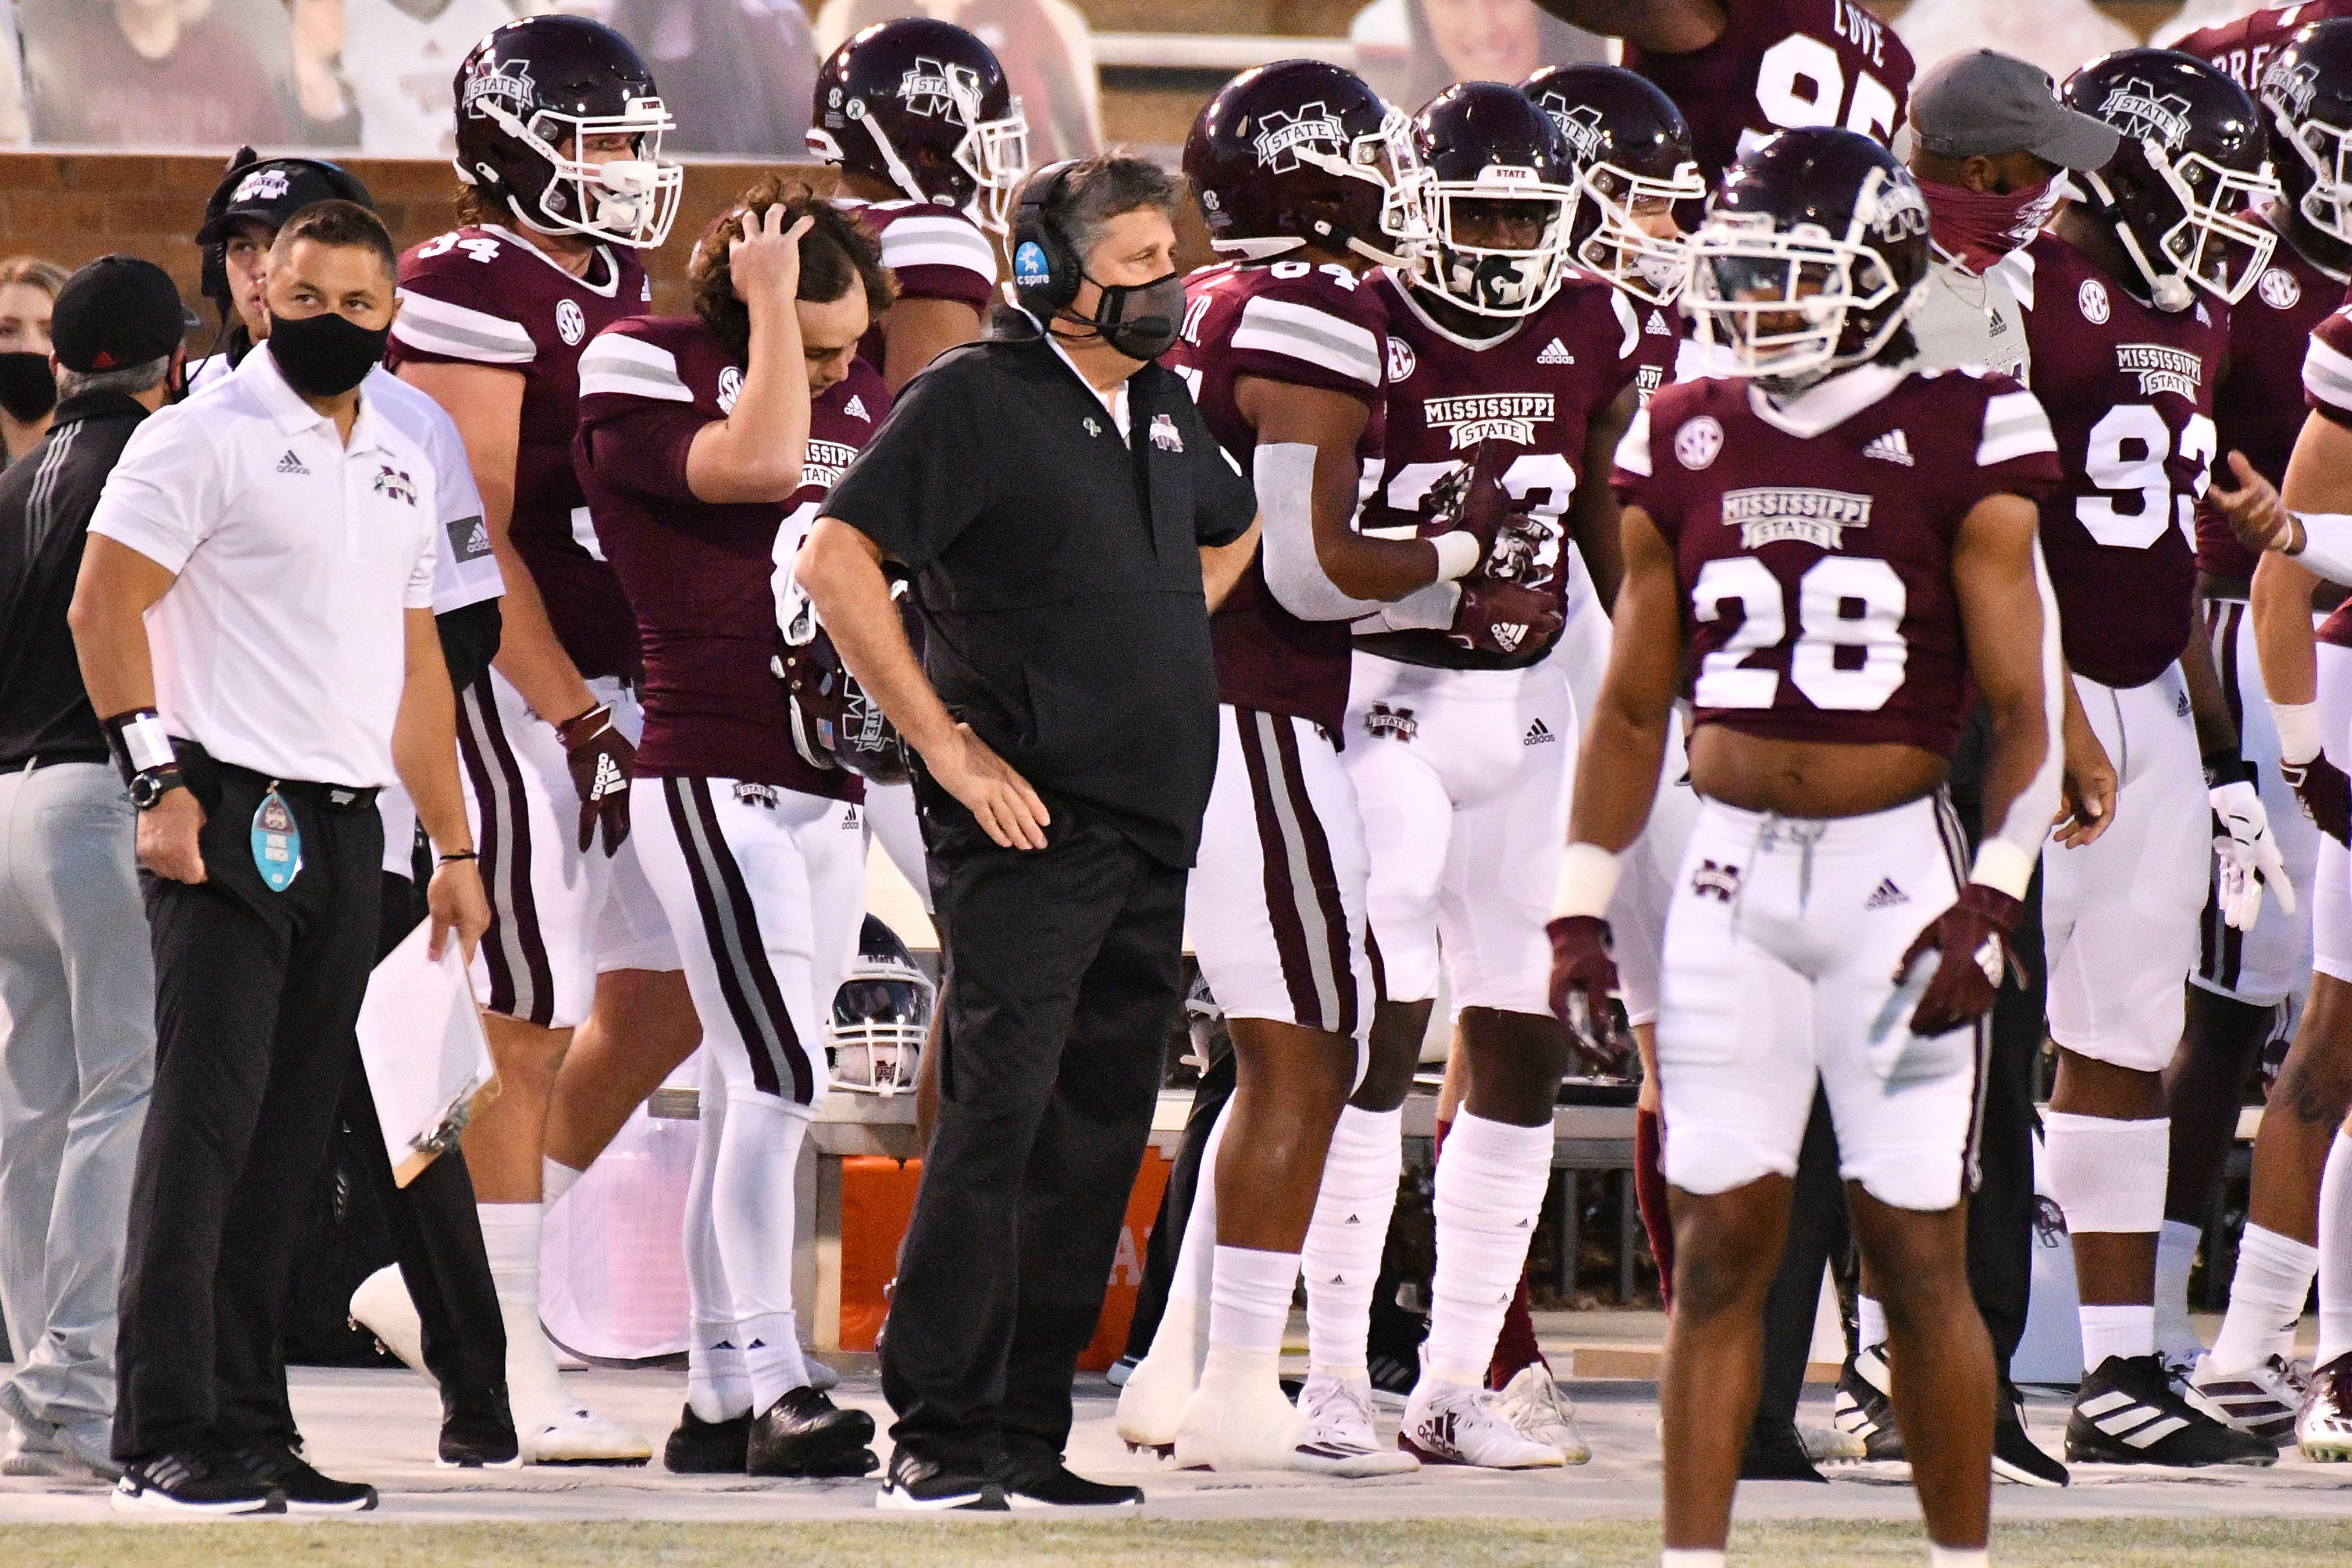 College football coronavirus updates: Mississippi State to play with fewer than 53 scholarship players, per reports